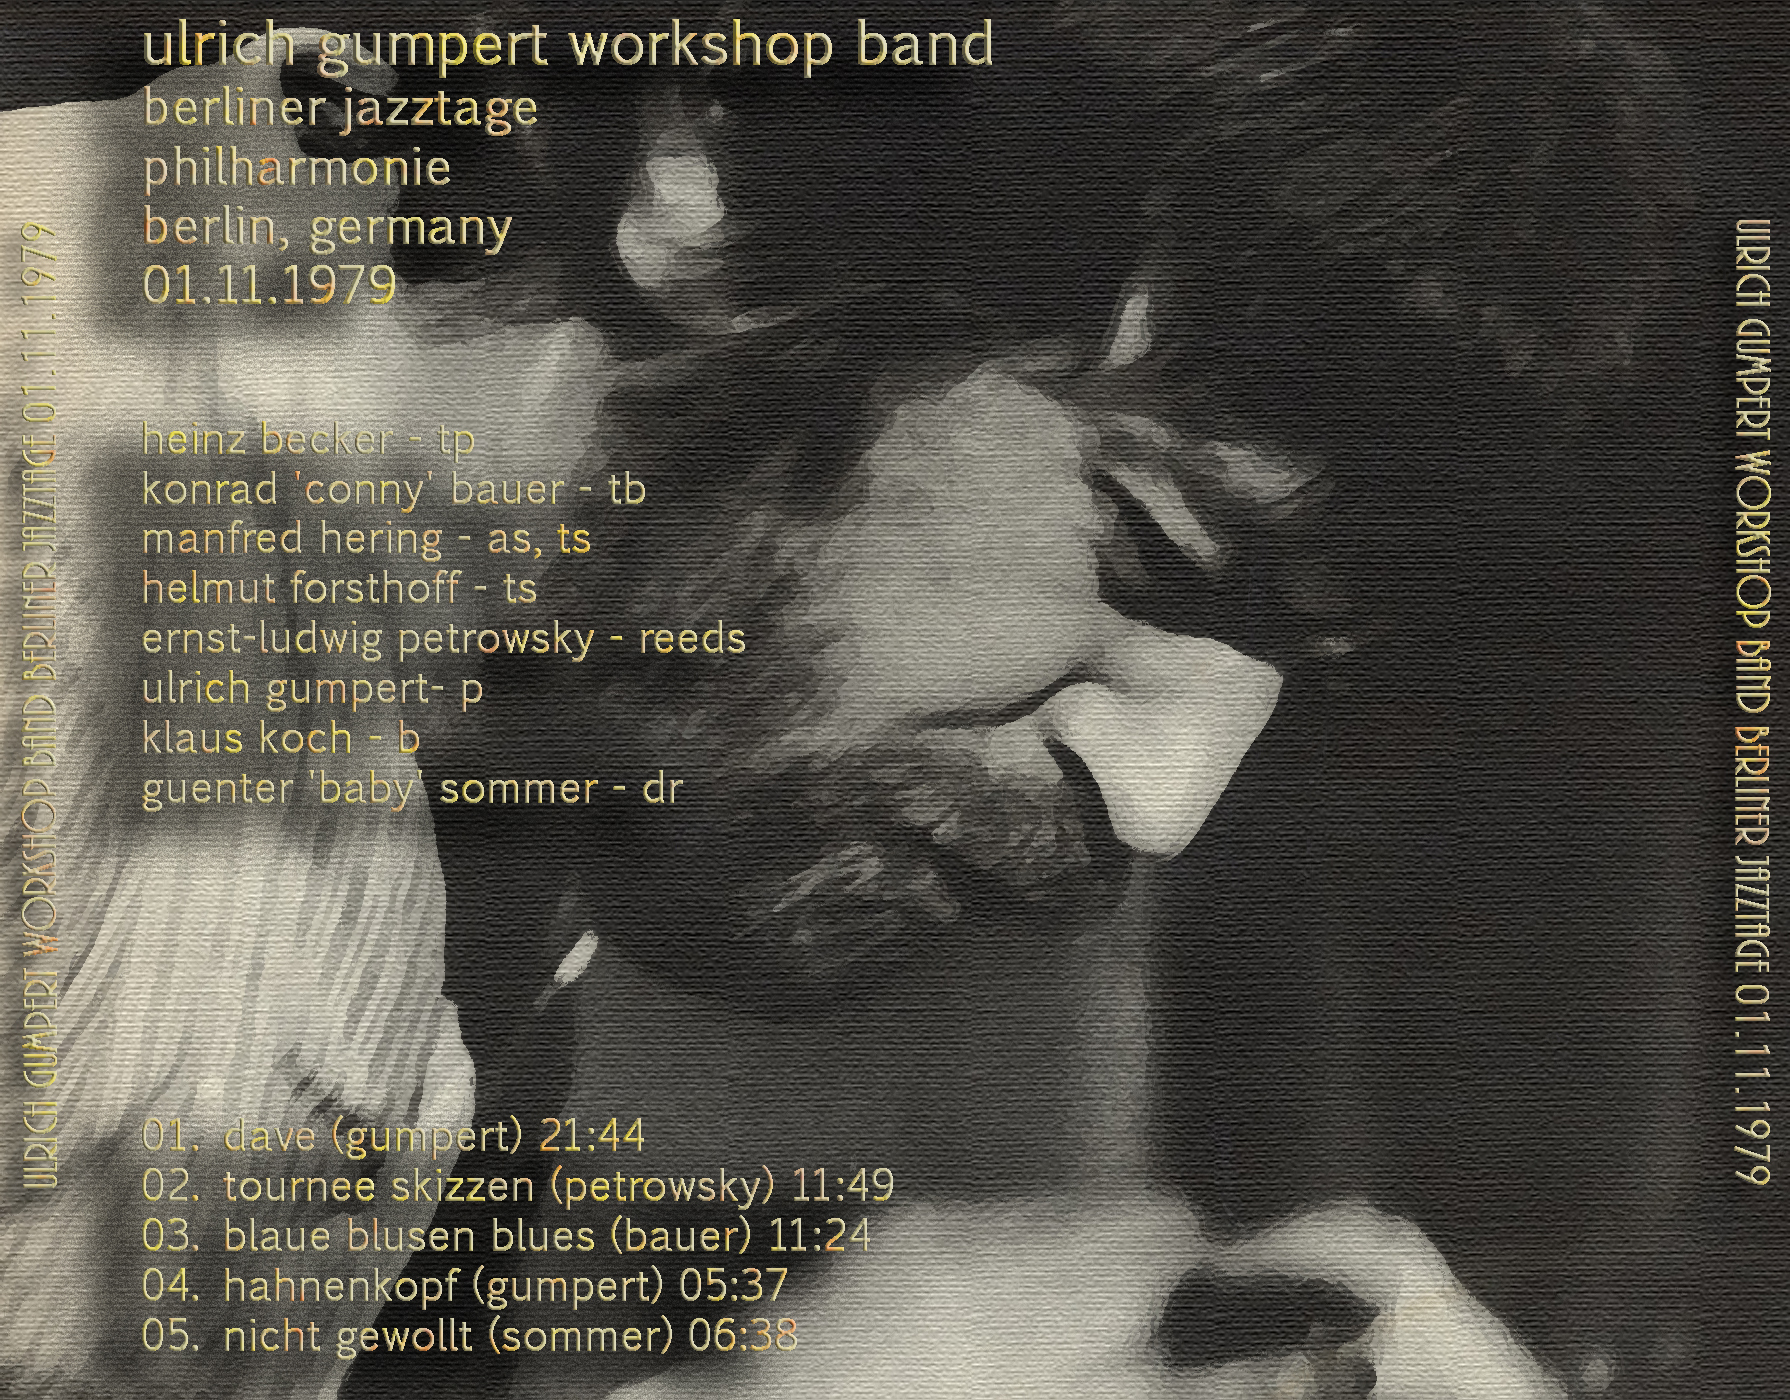 UlrichGumpertWorkshopBand1979-11-01PhilharmonieBerlinGermany (2).jpg